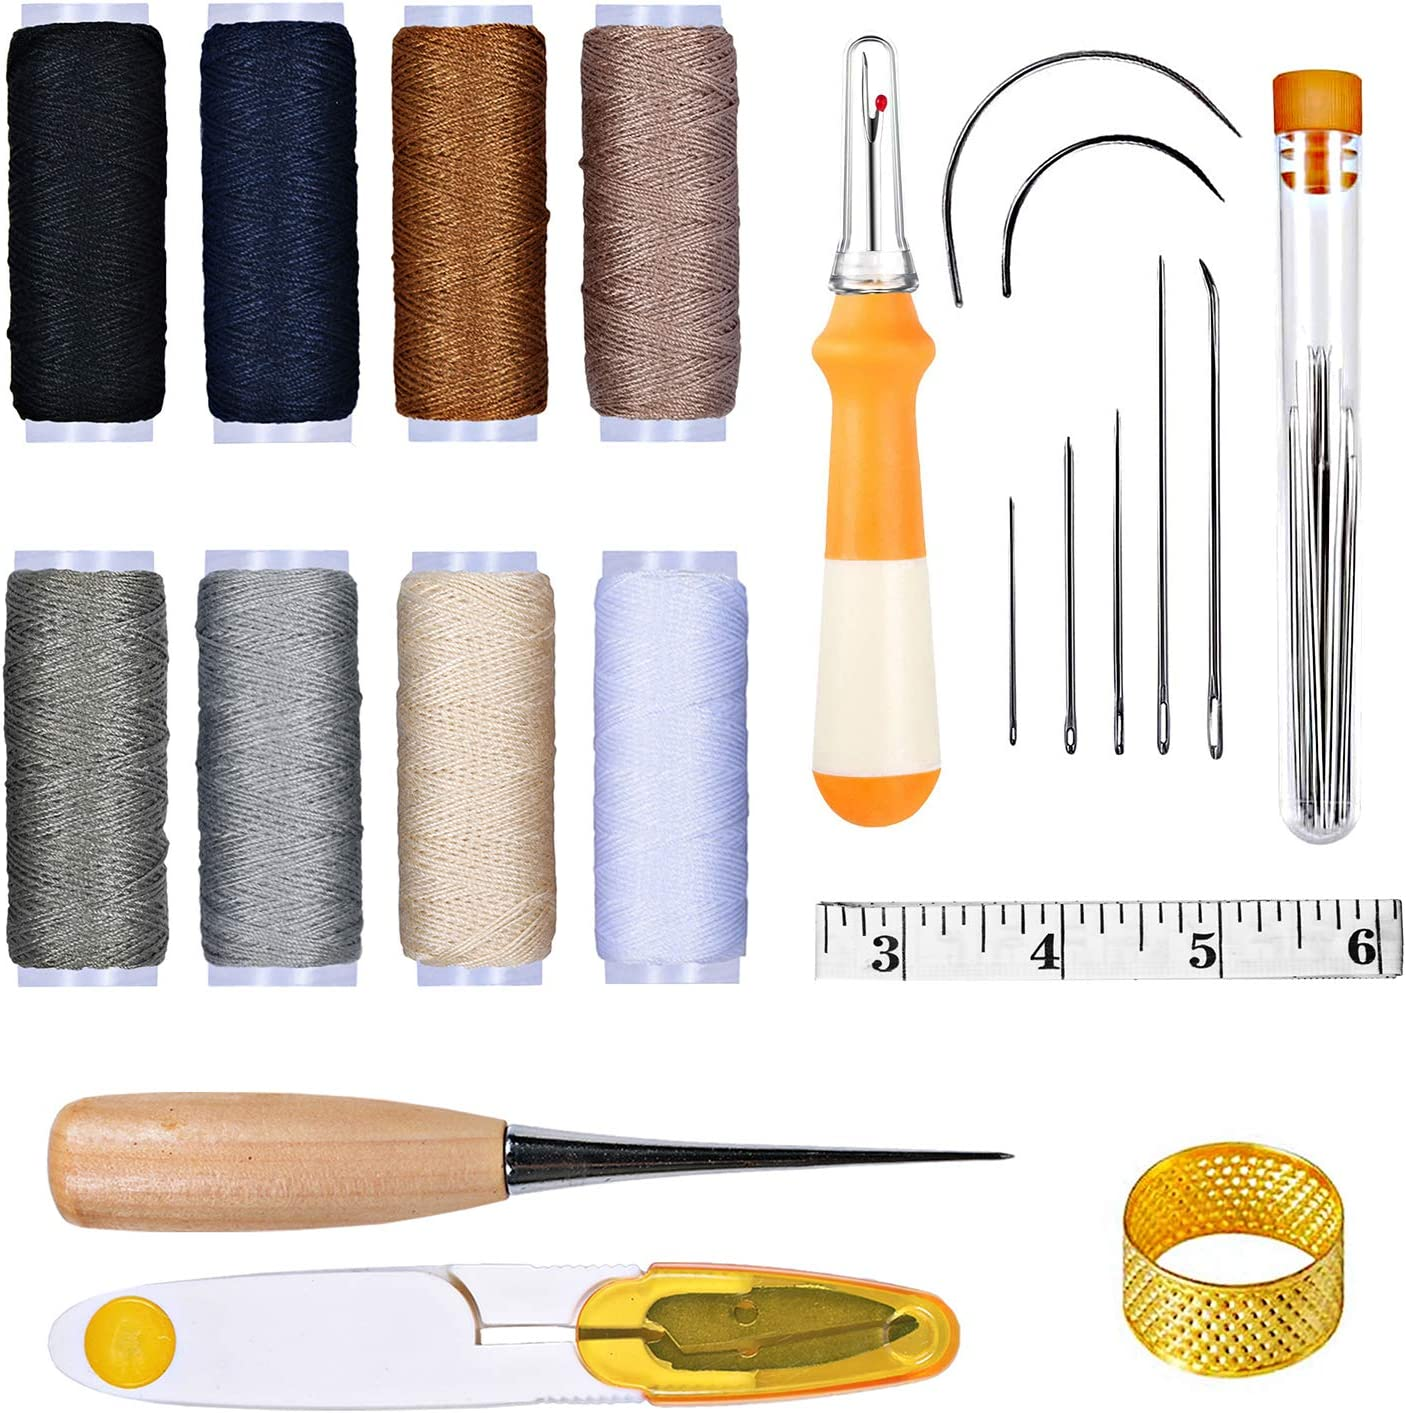 HMMS 30Pcs Upholstery Repair Kit with Sewing Needles Thread Tape Measure Awl Leather Craft Tools for Leather Canvas Repair, Home Hand Sewing Kits